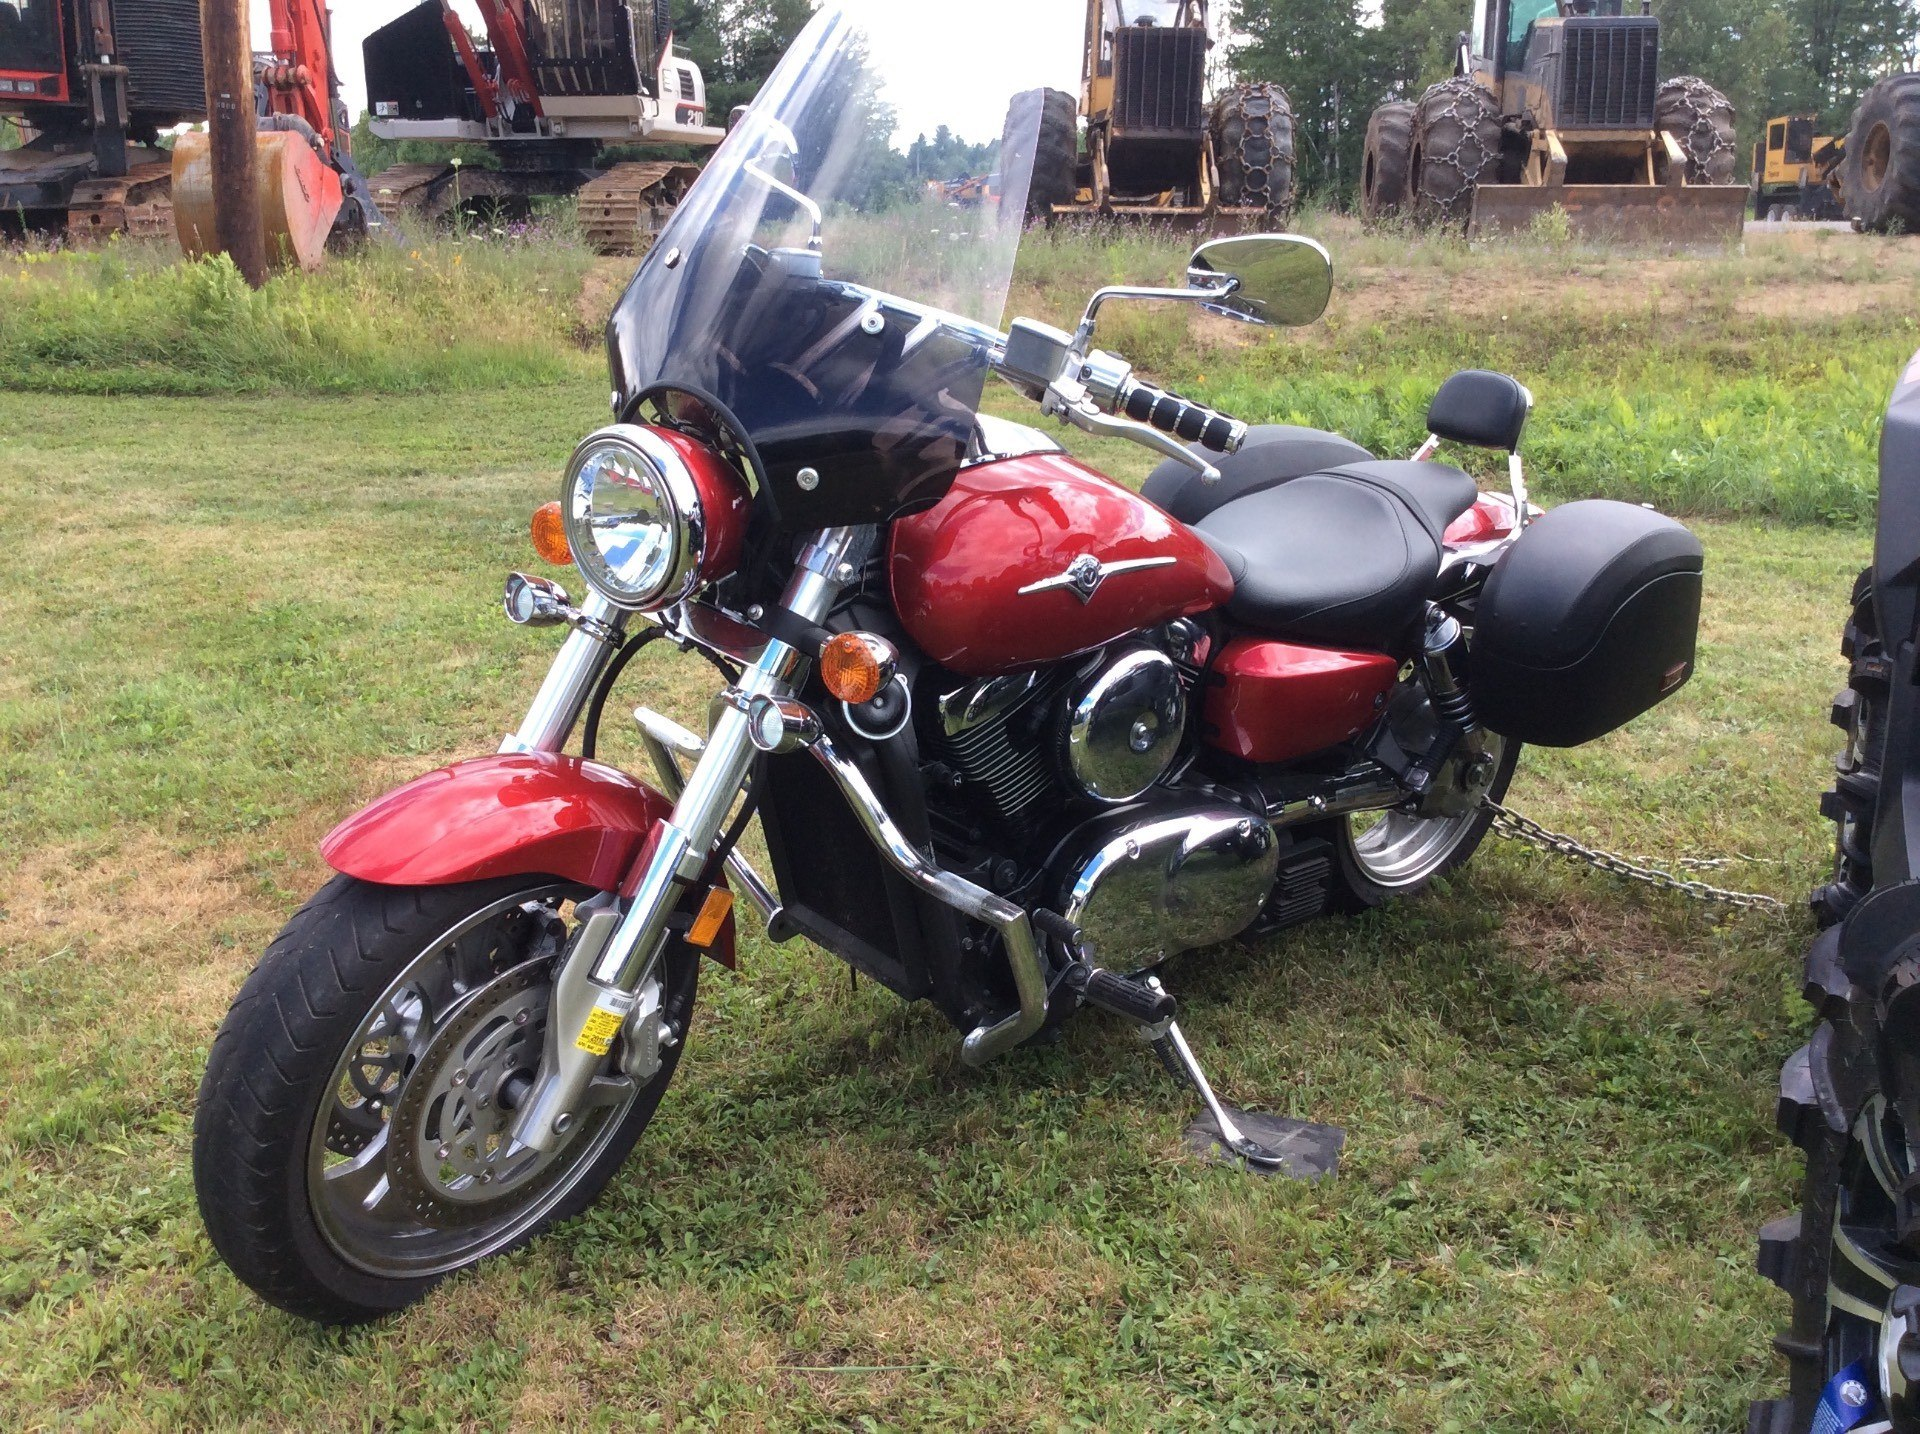 Used 2008 Kawasaki Vulcan 1600 Mean Streak Motorcycles In